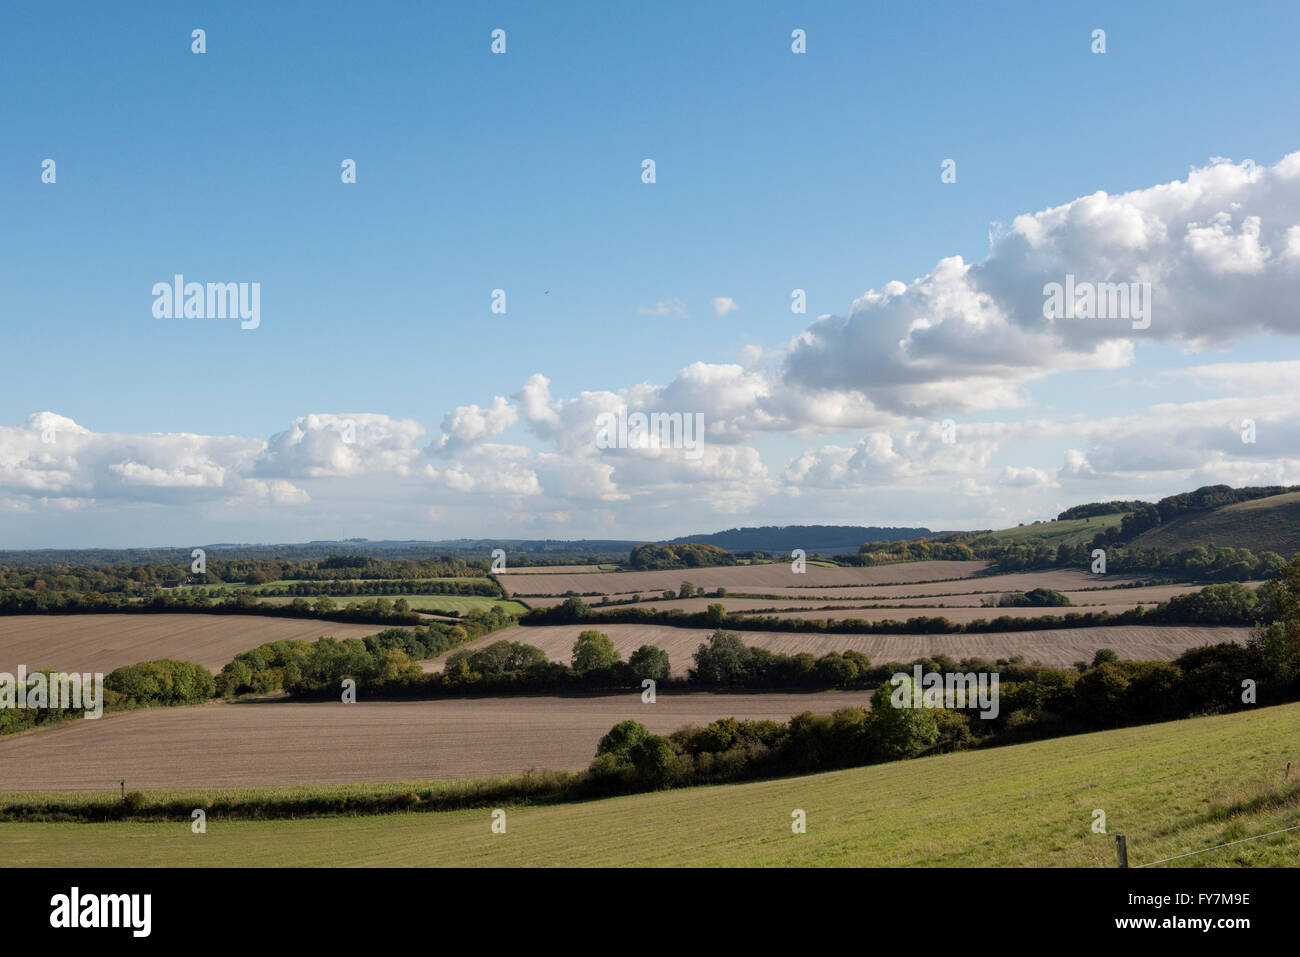 Looking over autumn fields and seedbeds with hedgerows and trees in West Berkshire - Stock Image